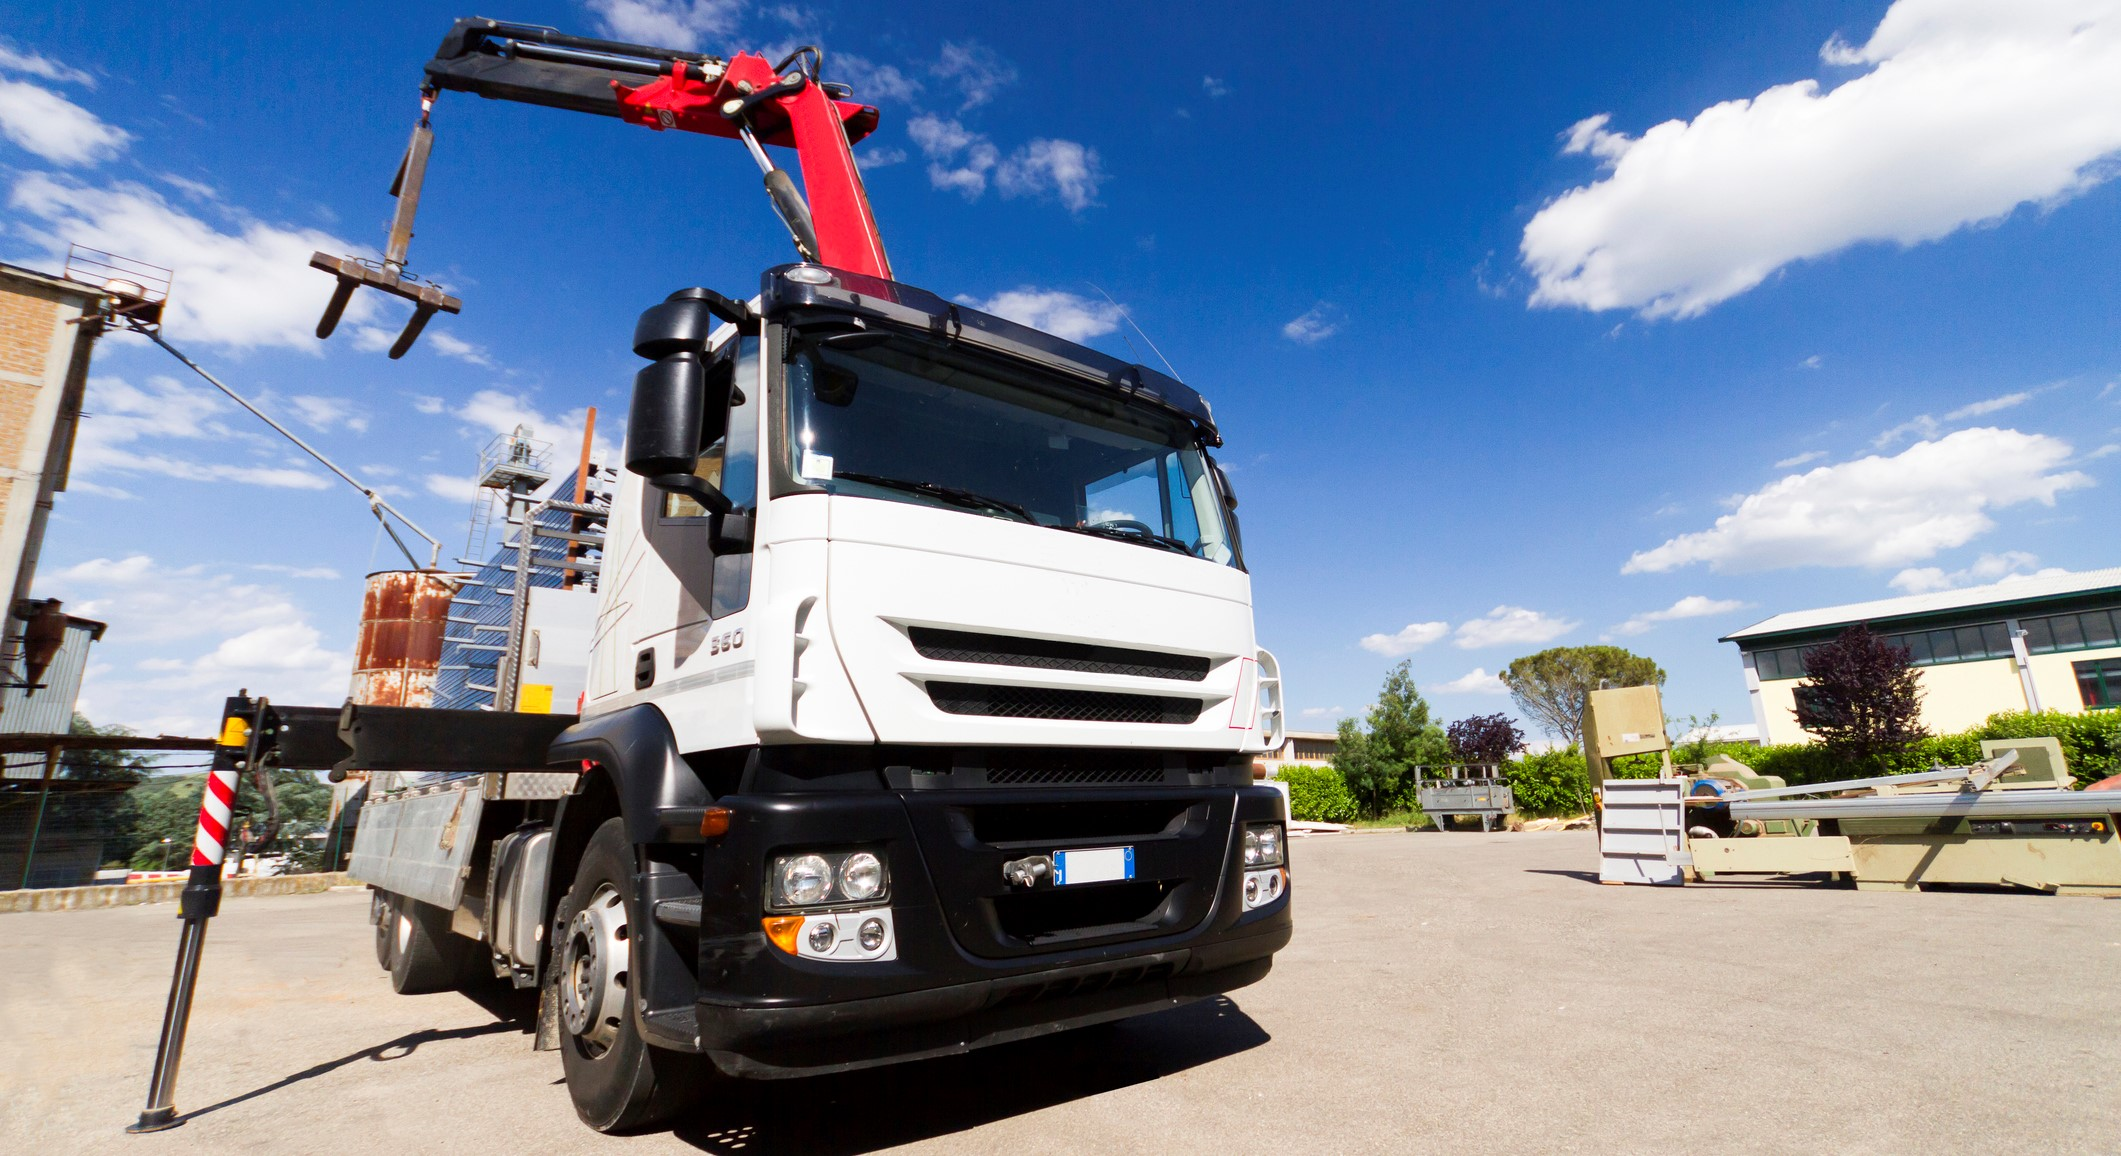 A white HIAB crane loaded lorry unloading pallets in a yard